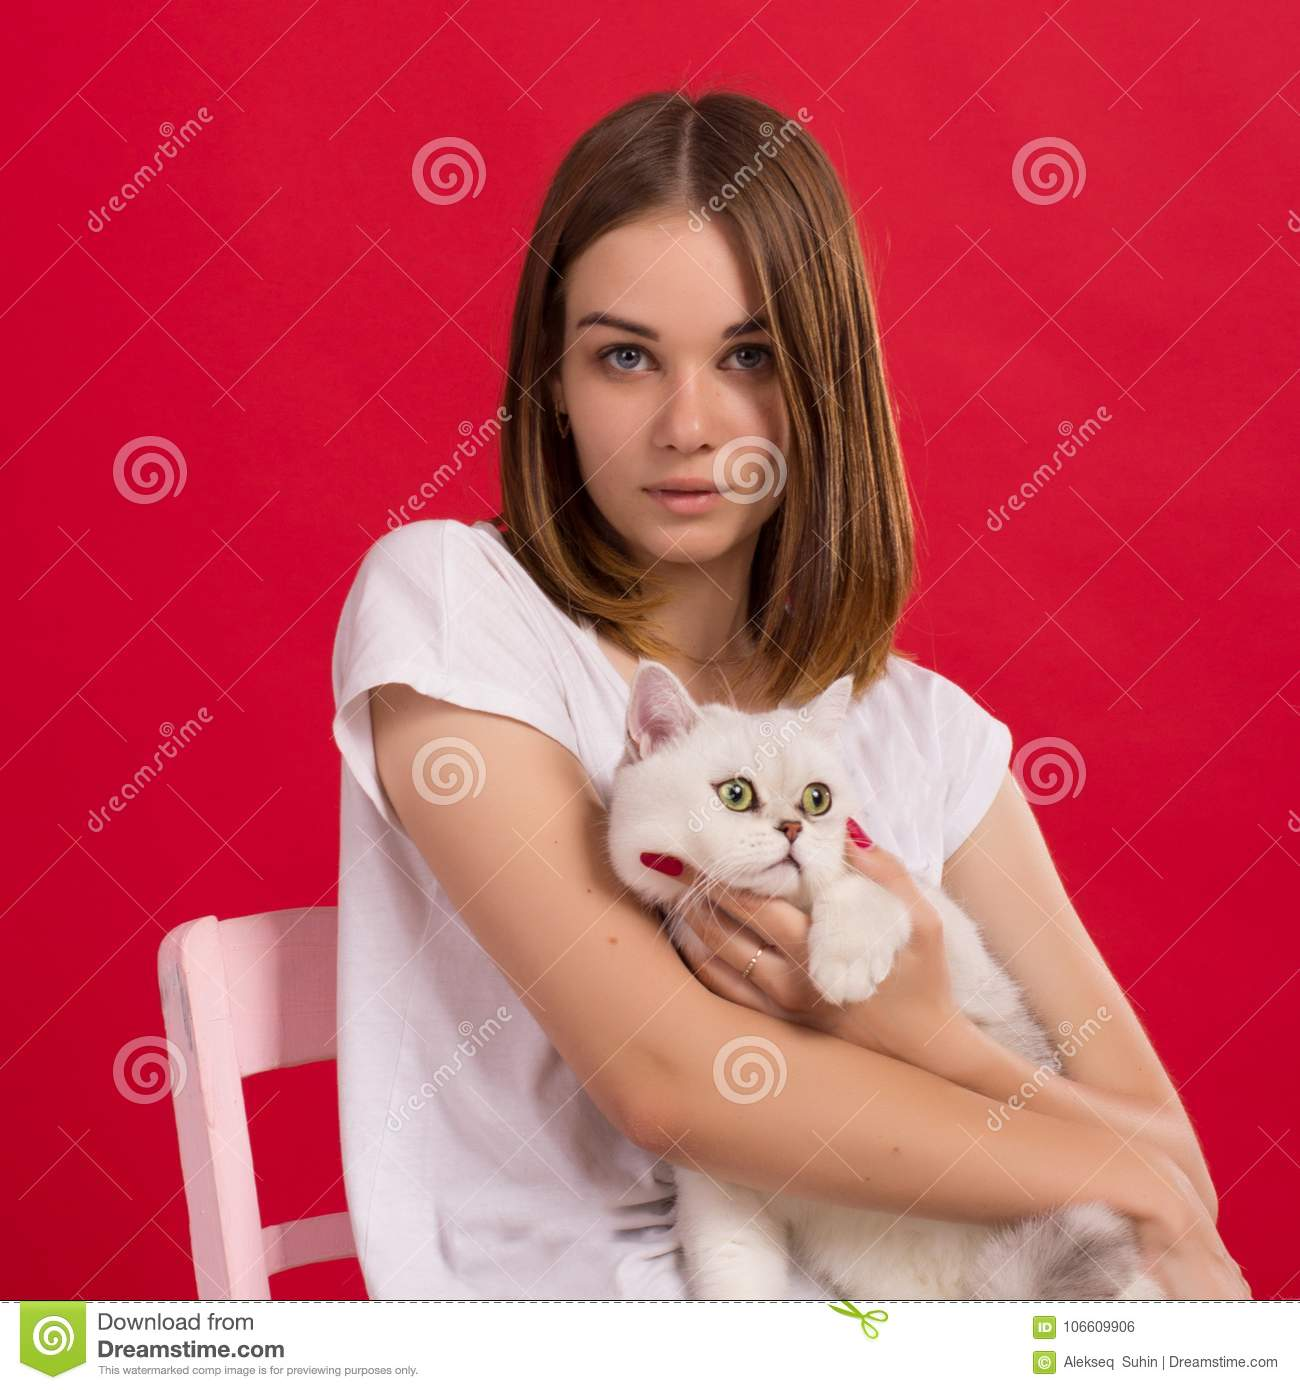 Young Cute Girl With Cat Studio Stock Photo Image Of Adult Isolated 106609906